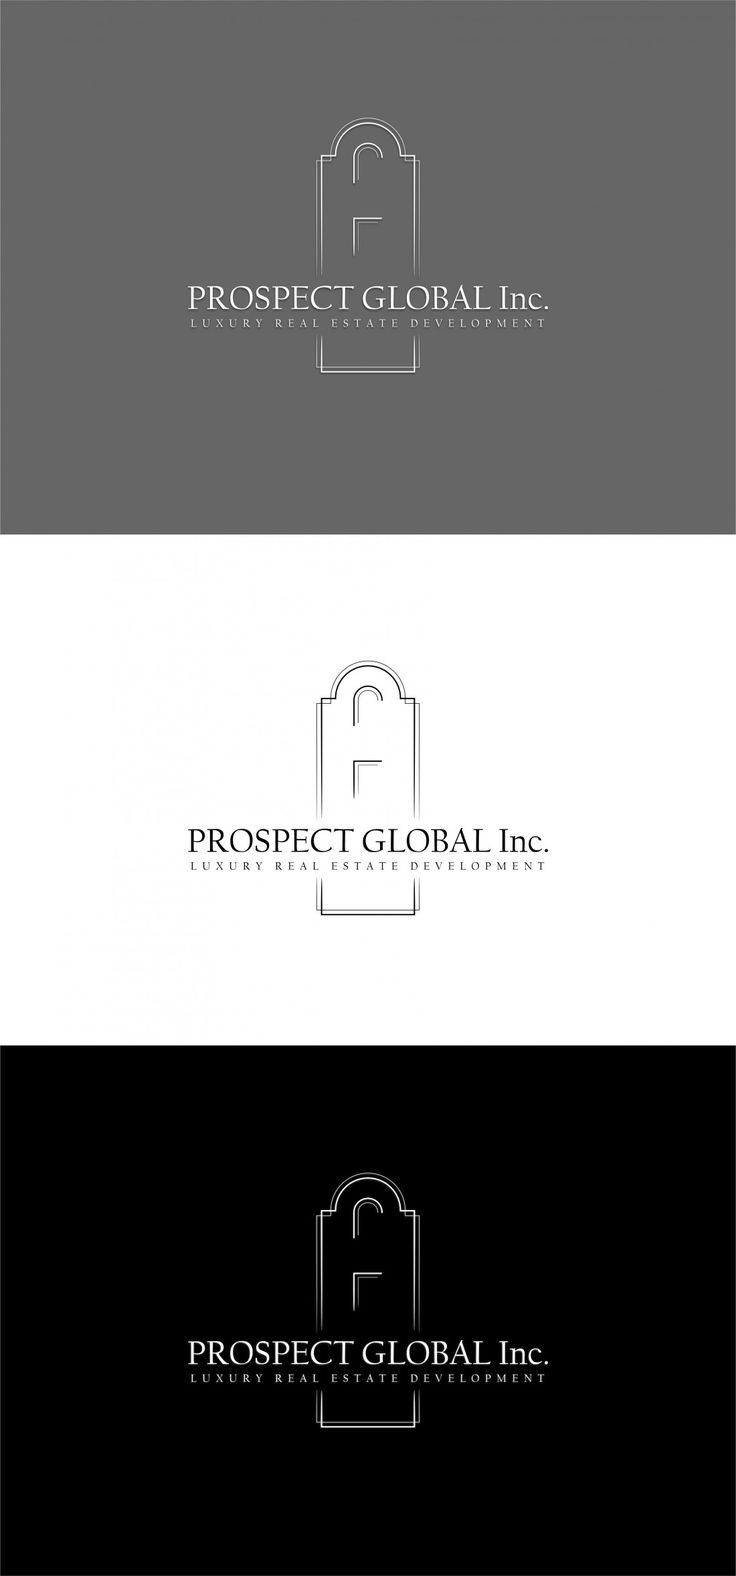 Praca nr 340717 w konkursie Logo dla firmy Prospect Global - Luxury Real Estate Developments | Corton.pl